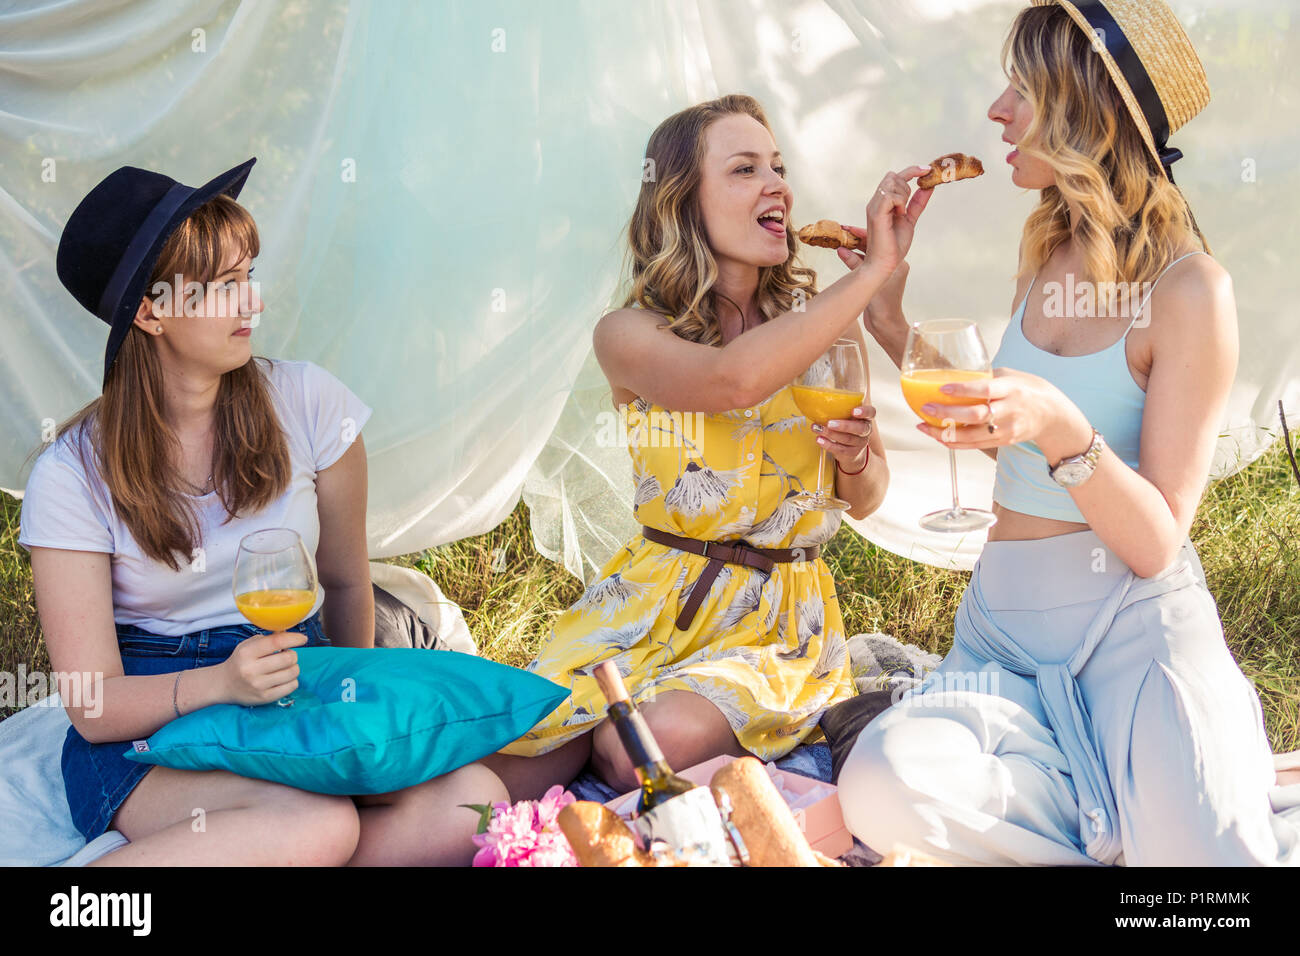 Group of girls friends making picnic outdoor. They feed each other with a croissant - Stock Image